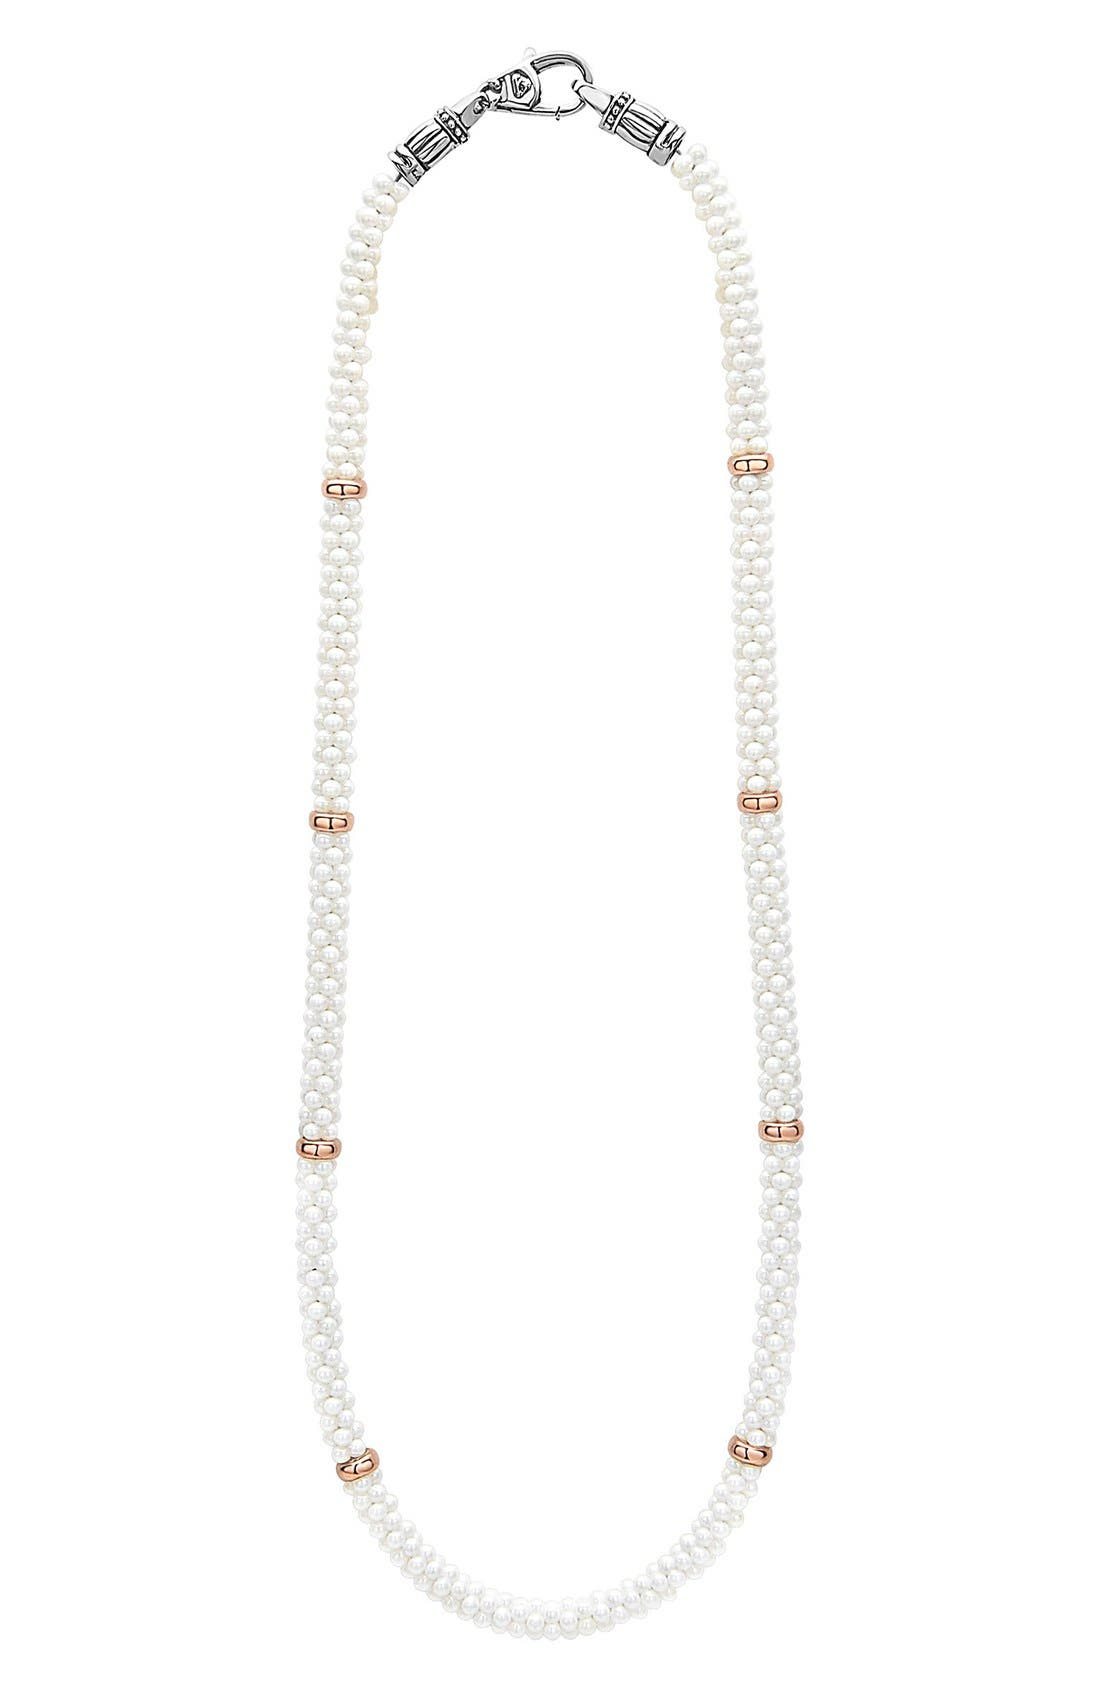 'White Caviar' 5mm Beaded Station Necklace,                             Main thumbnail 1, color,                             100